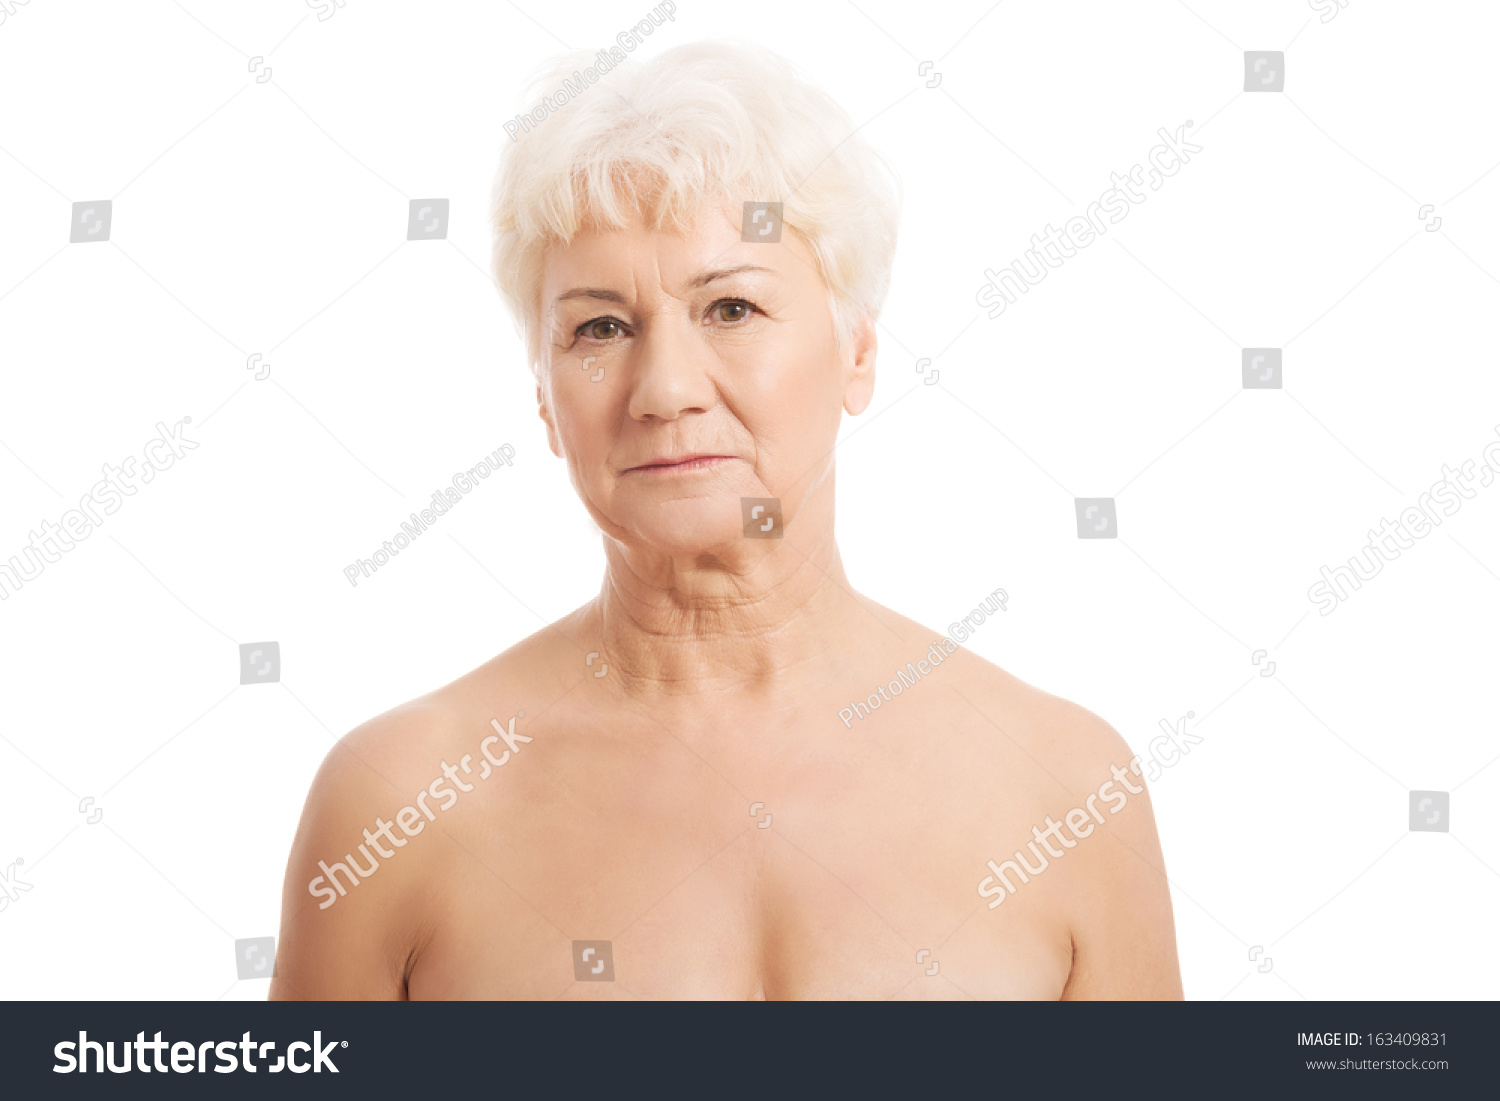 Nude Pics Of Old Woman